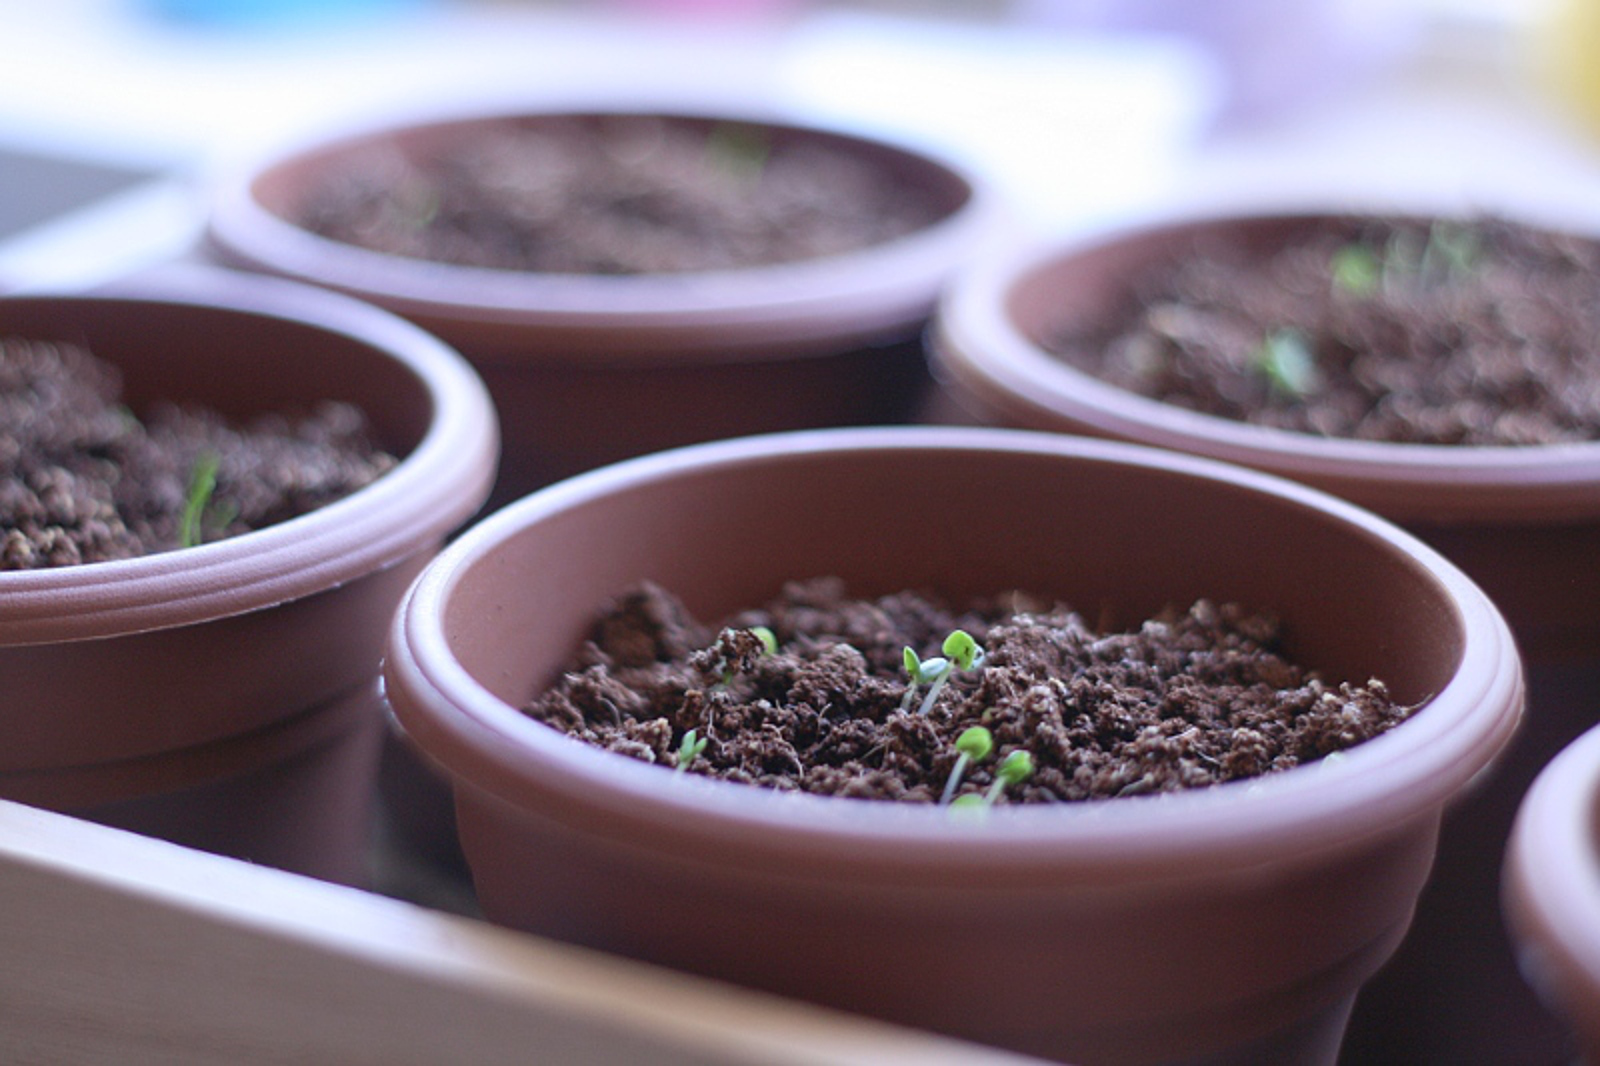 Why A Cardiologist Cares About Soil Quality (And Why You Should Too)